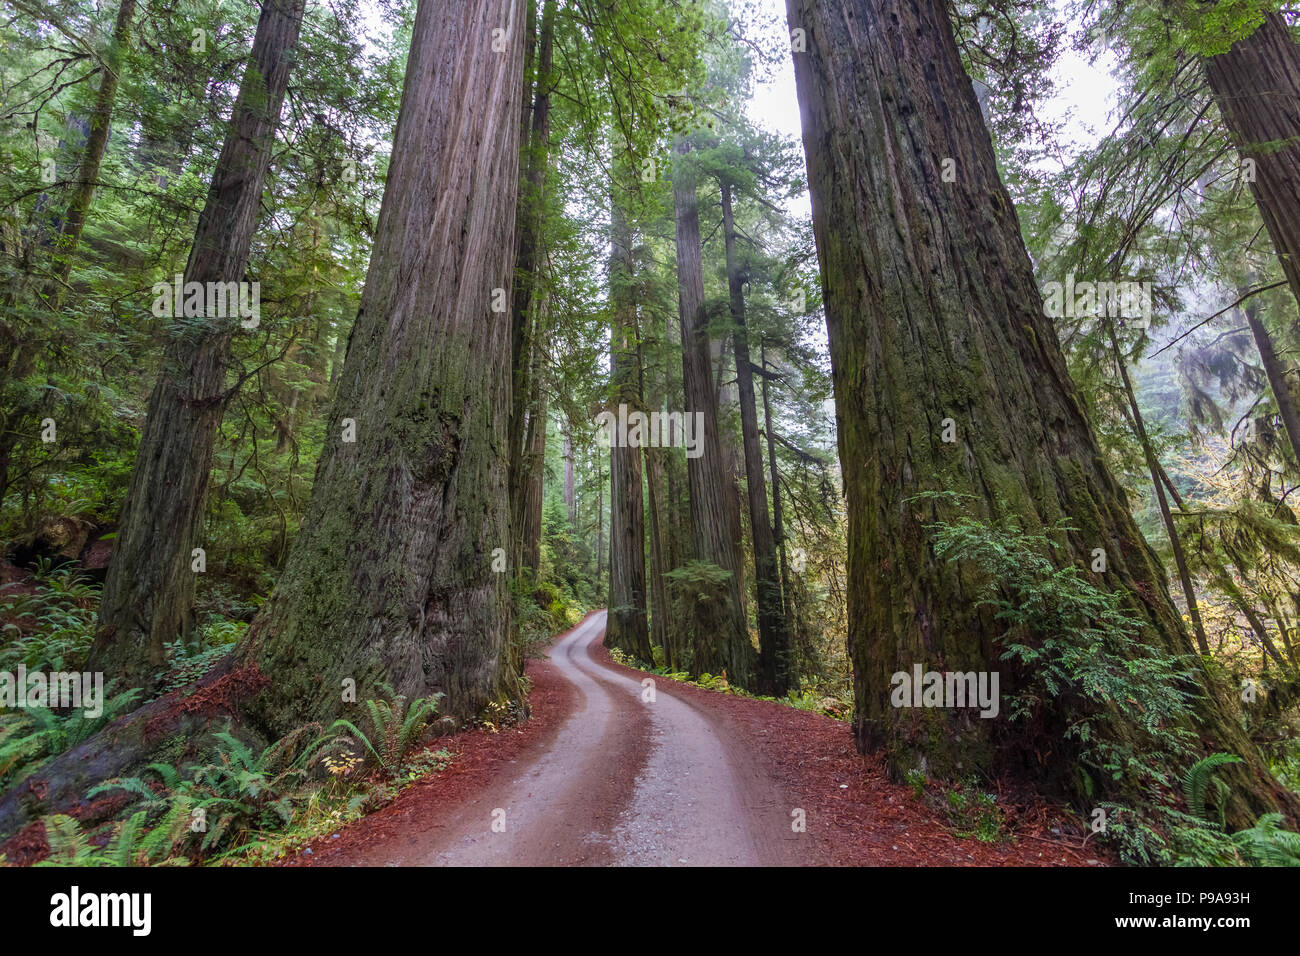 Giant Coastal Redwoods at Jediah Smith State Park in California - Stock Image